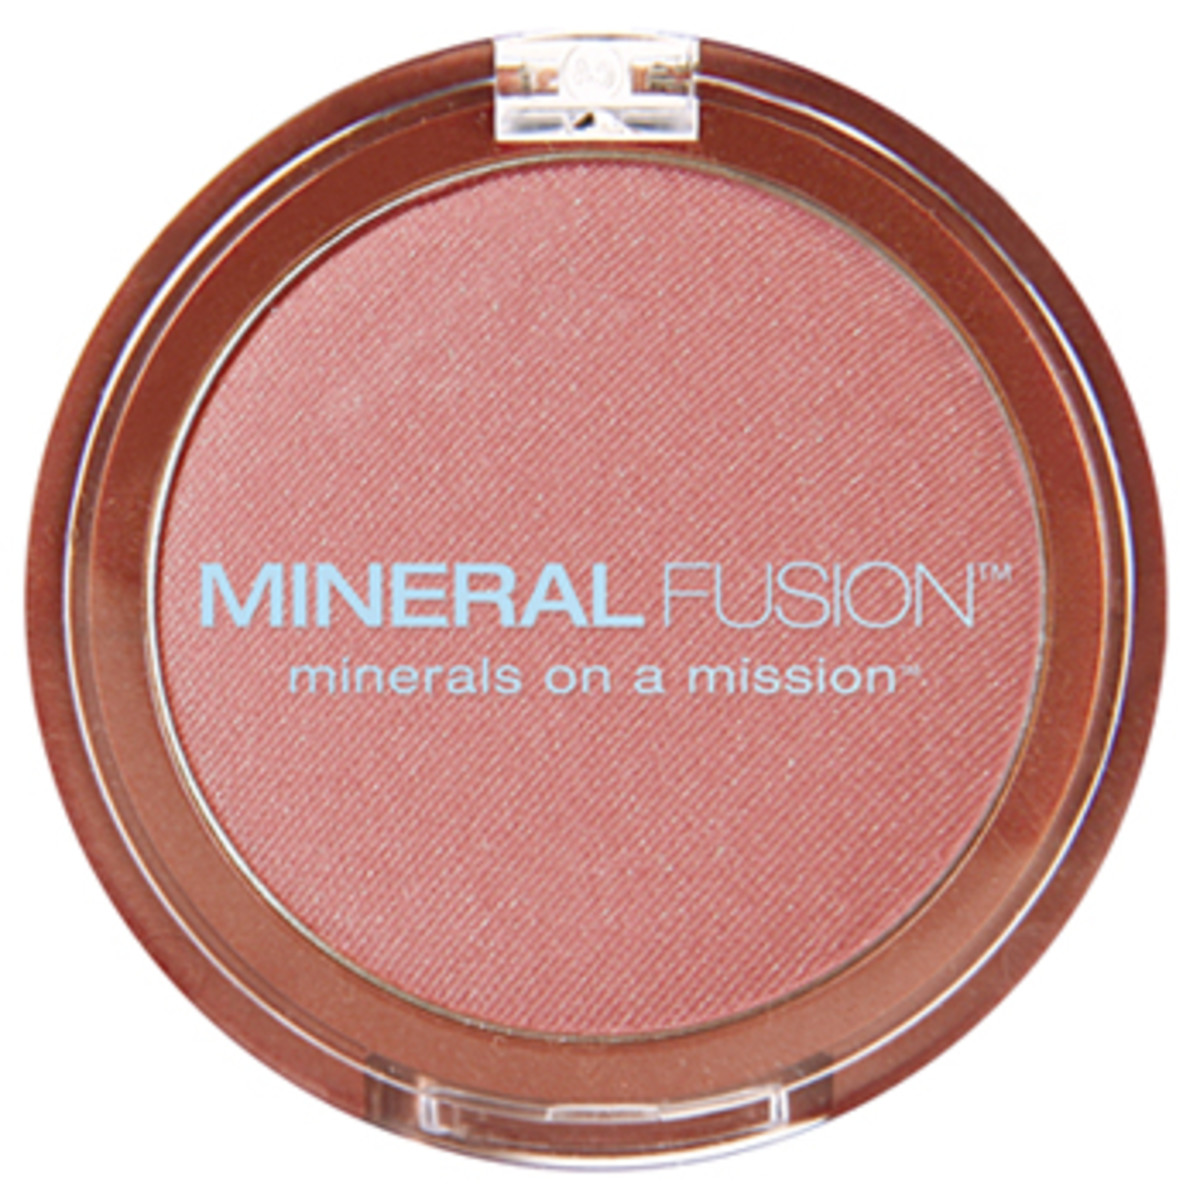 Mineral Fusion Blush in Creation